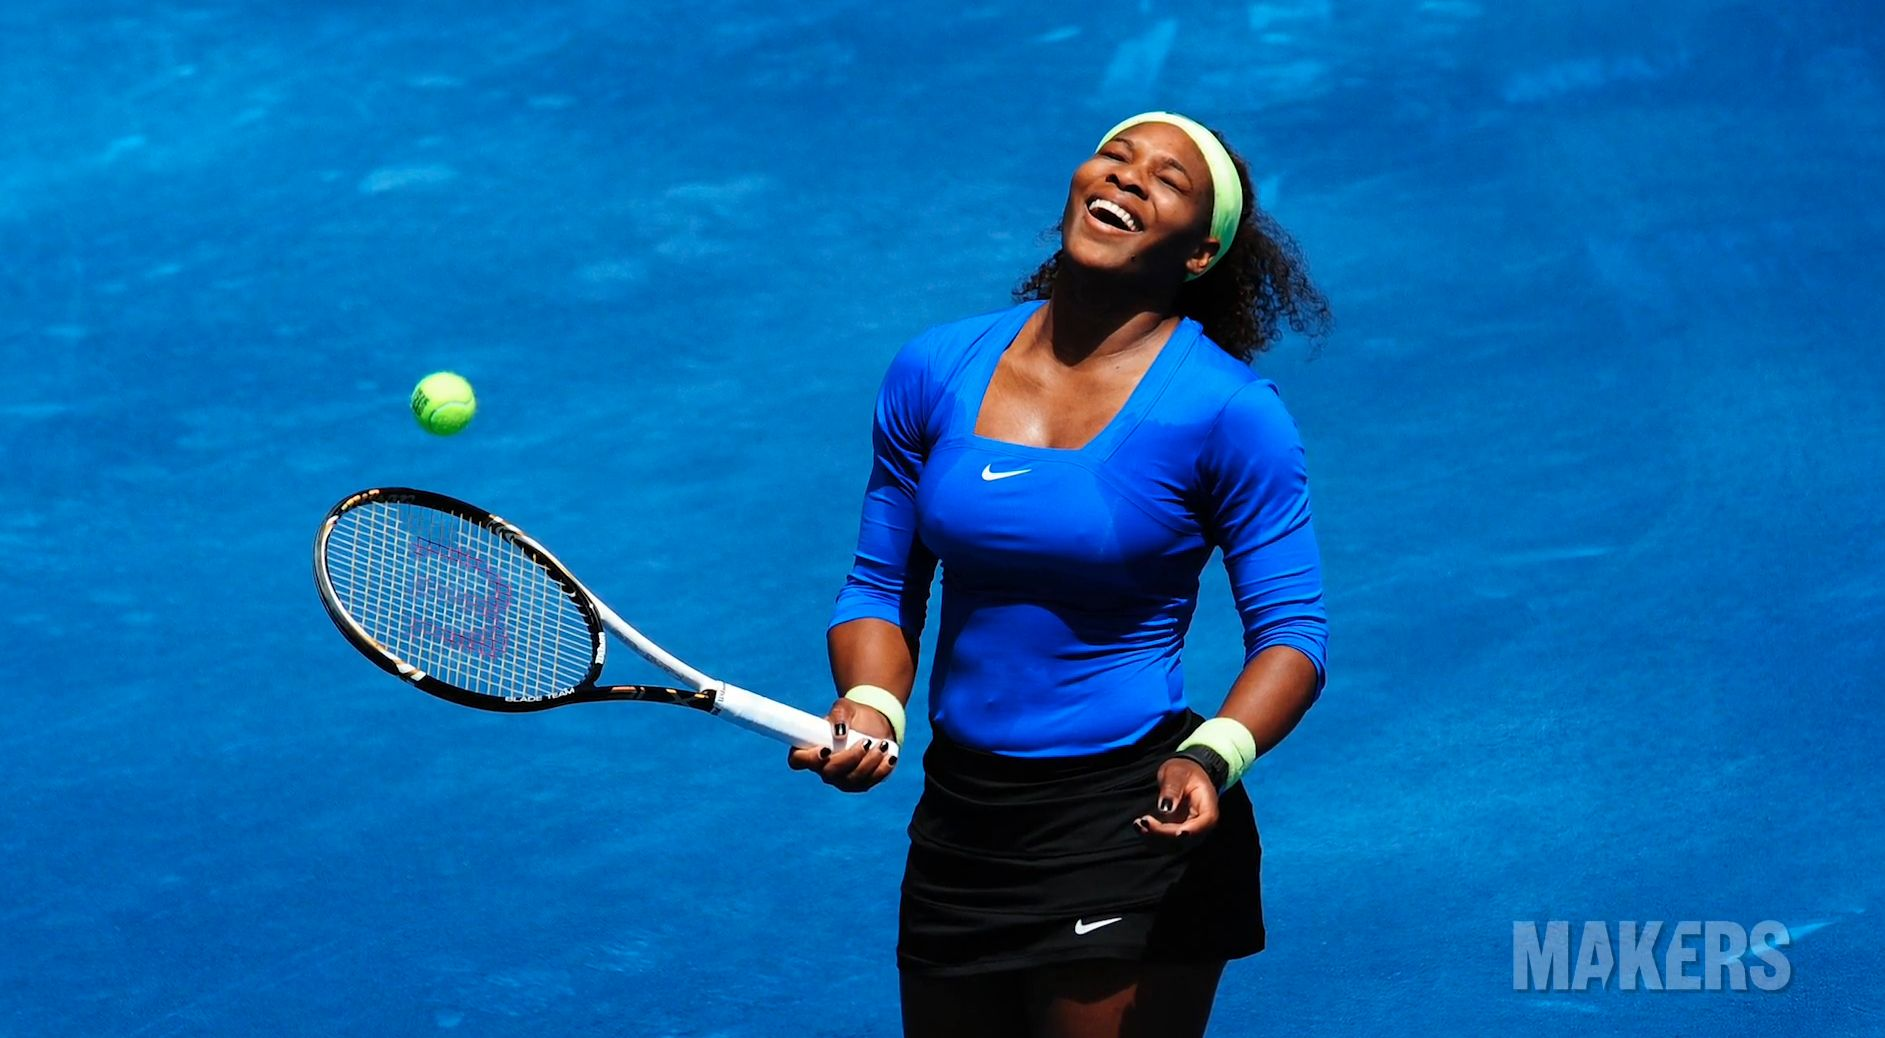 Serena Williams On Learning 'There's More To Life Than